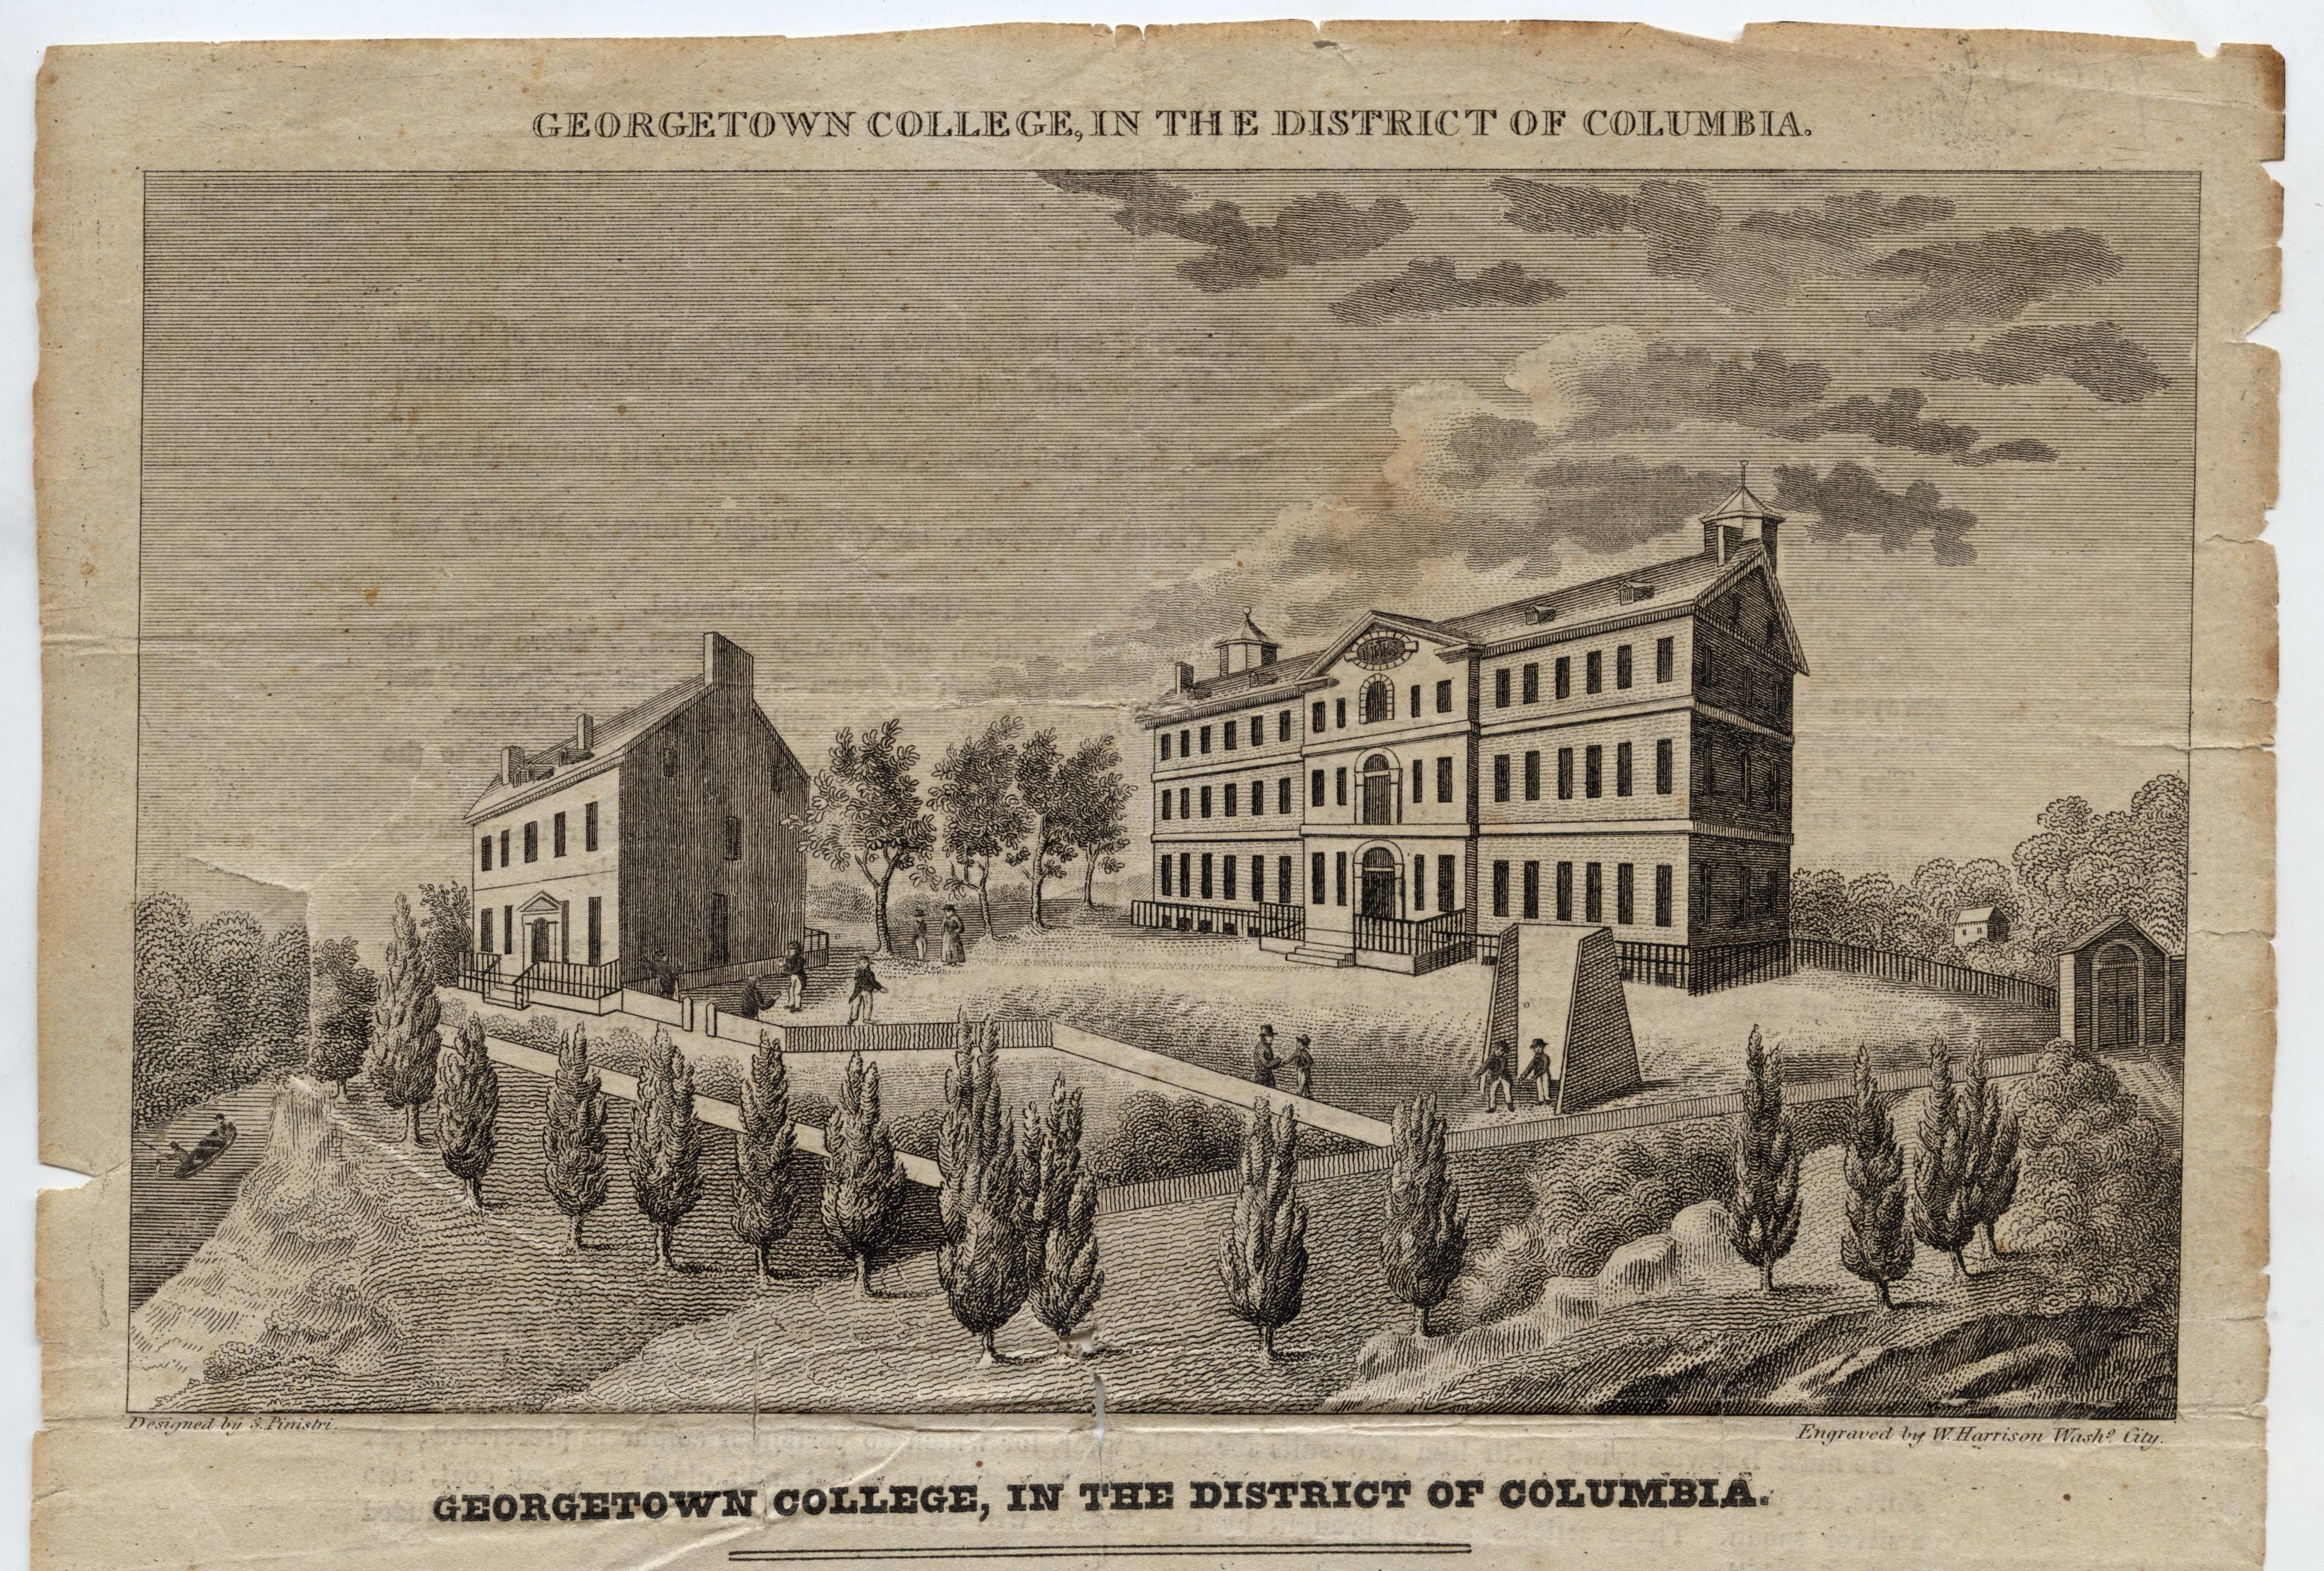 Engraving of Georgetown campus showing only two buildings